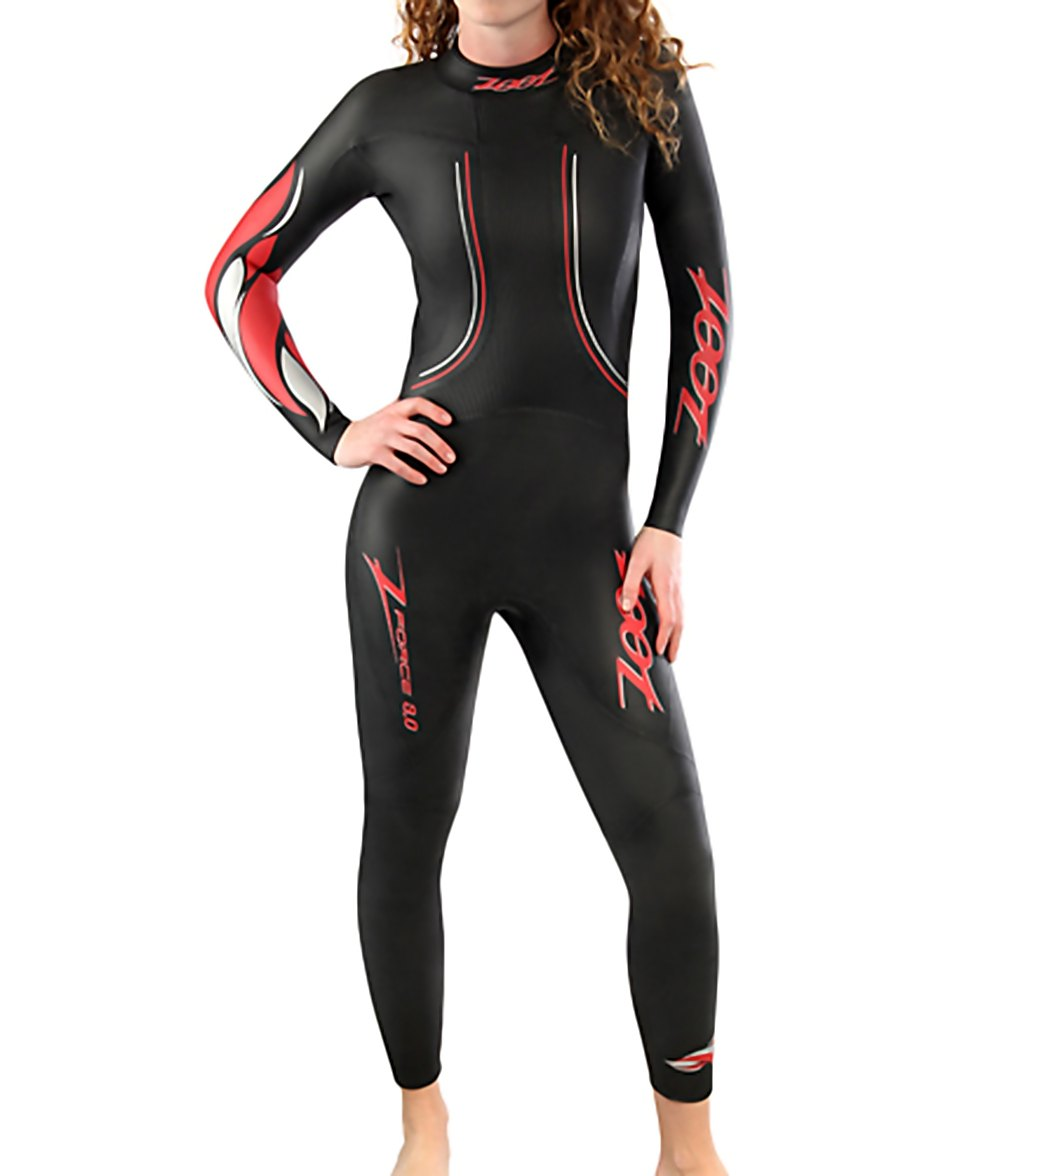 61d53ed3fb2 Zoot Women s Z FORCE 3.0 Wetsuit at SwimOutlet.com - Free Shipping